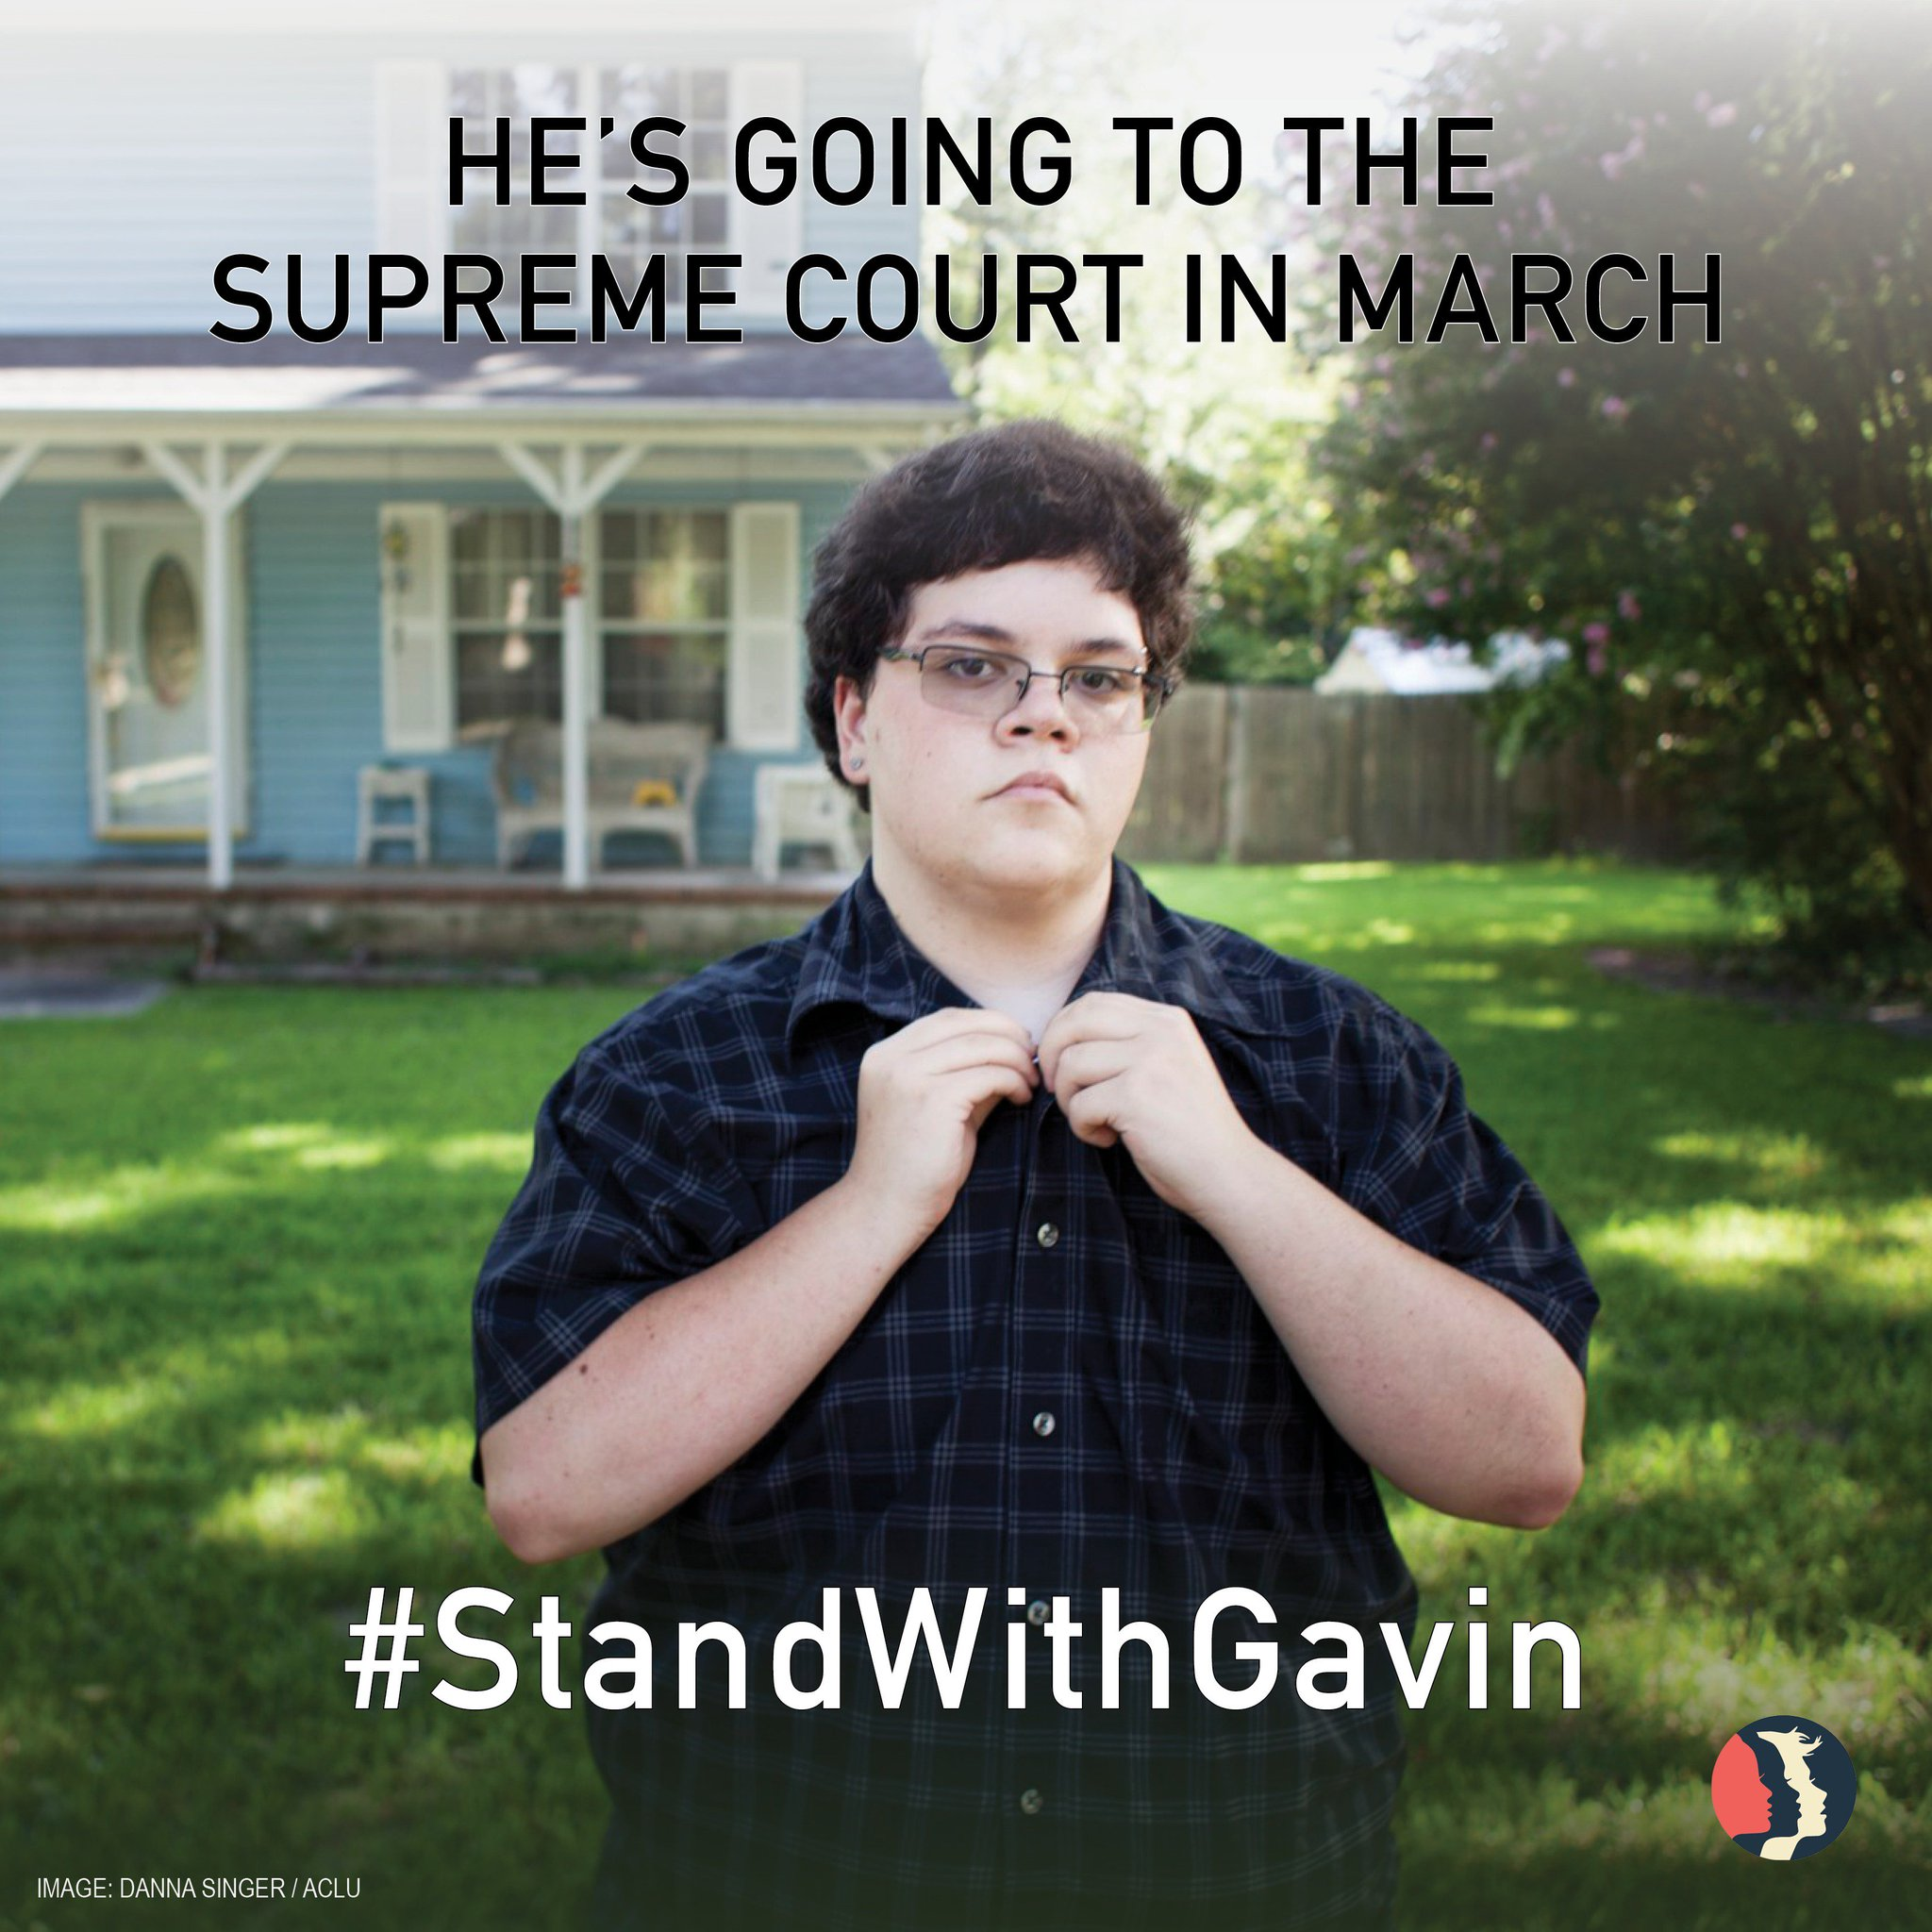 Transgender rights are human rights! We #StandWithGavin, the 17-year-old taking his fight for transgender rights to the Supreme Court. https://t.co/io9Ntwqqgm